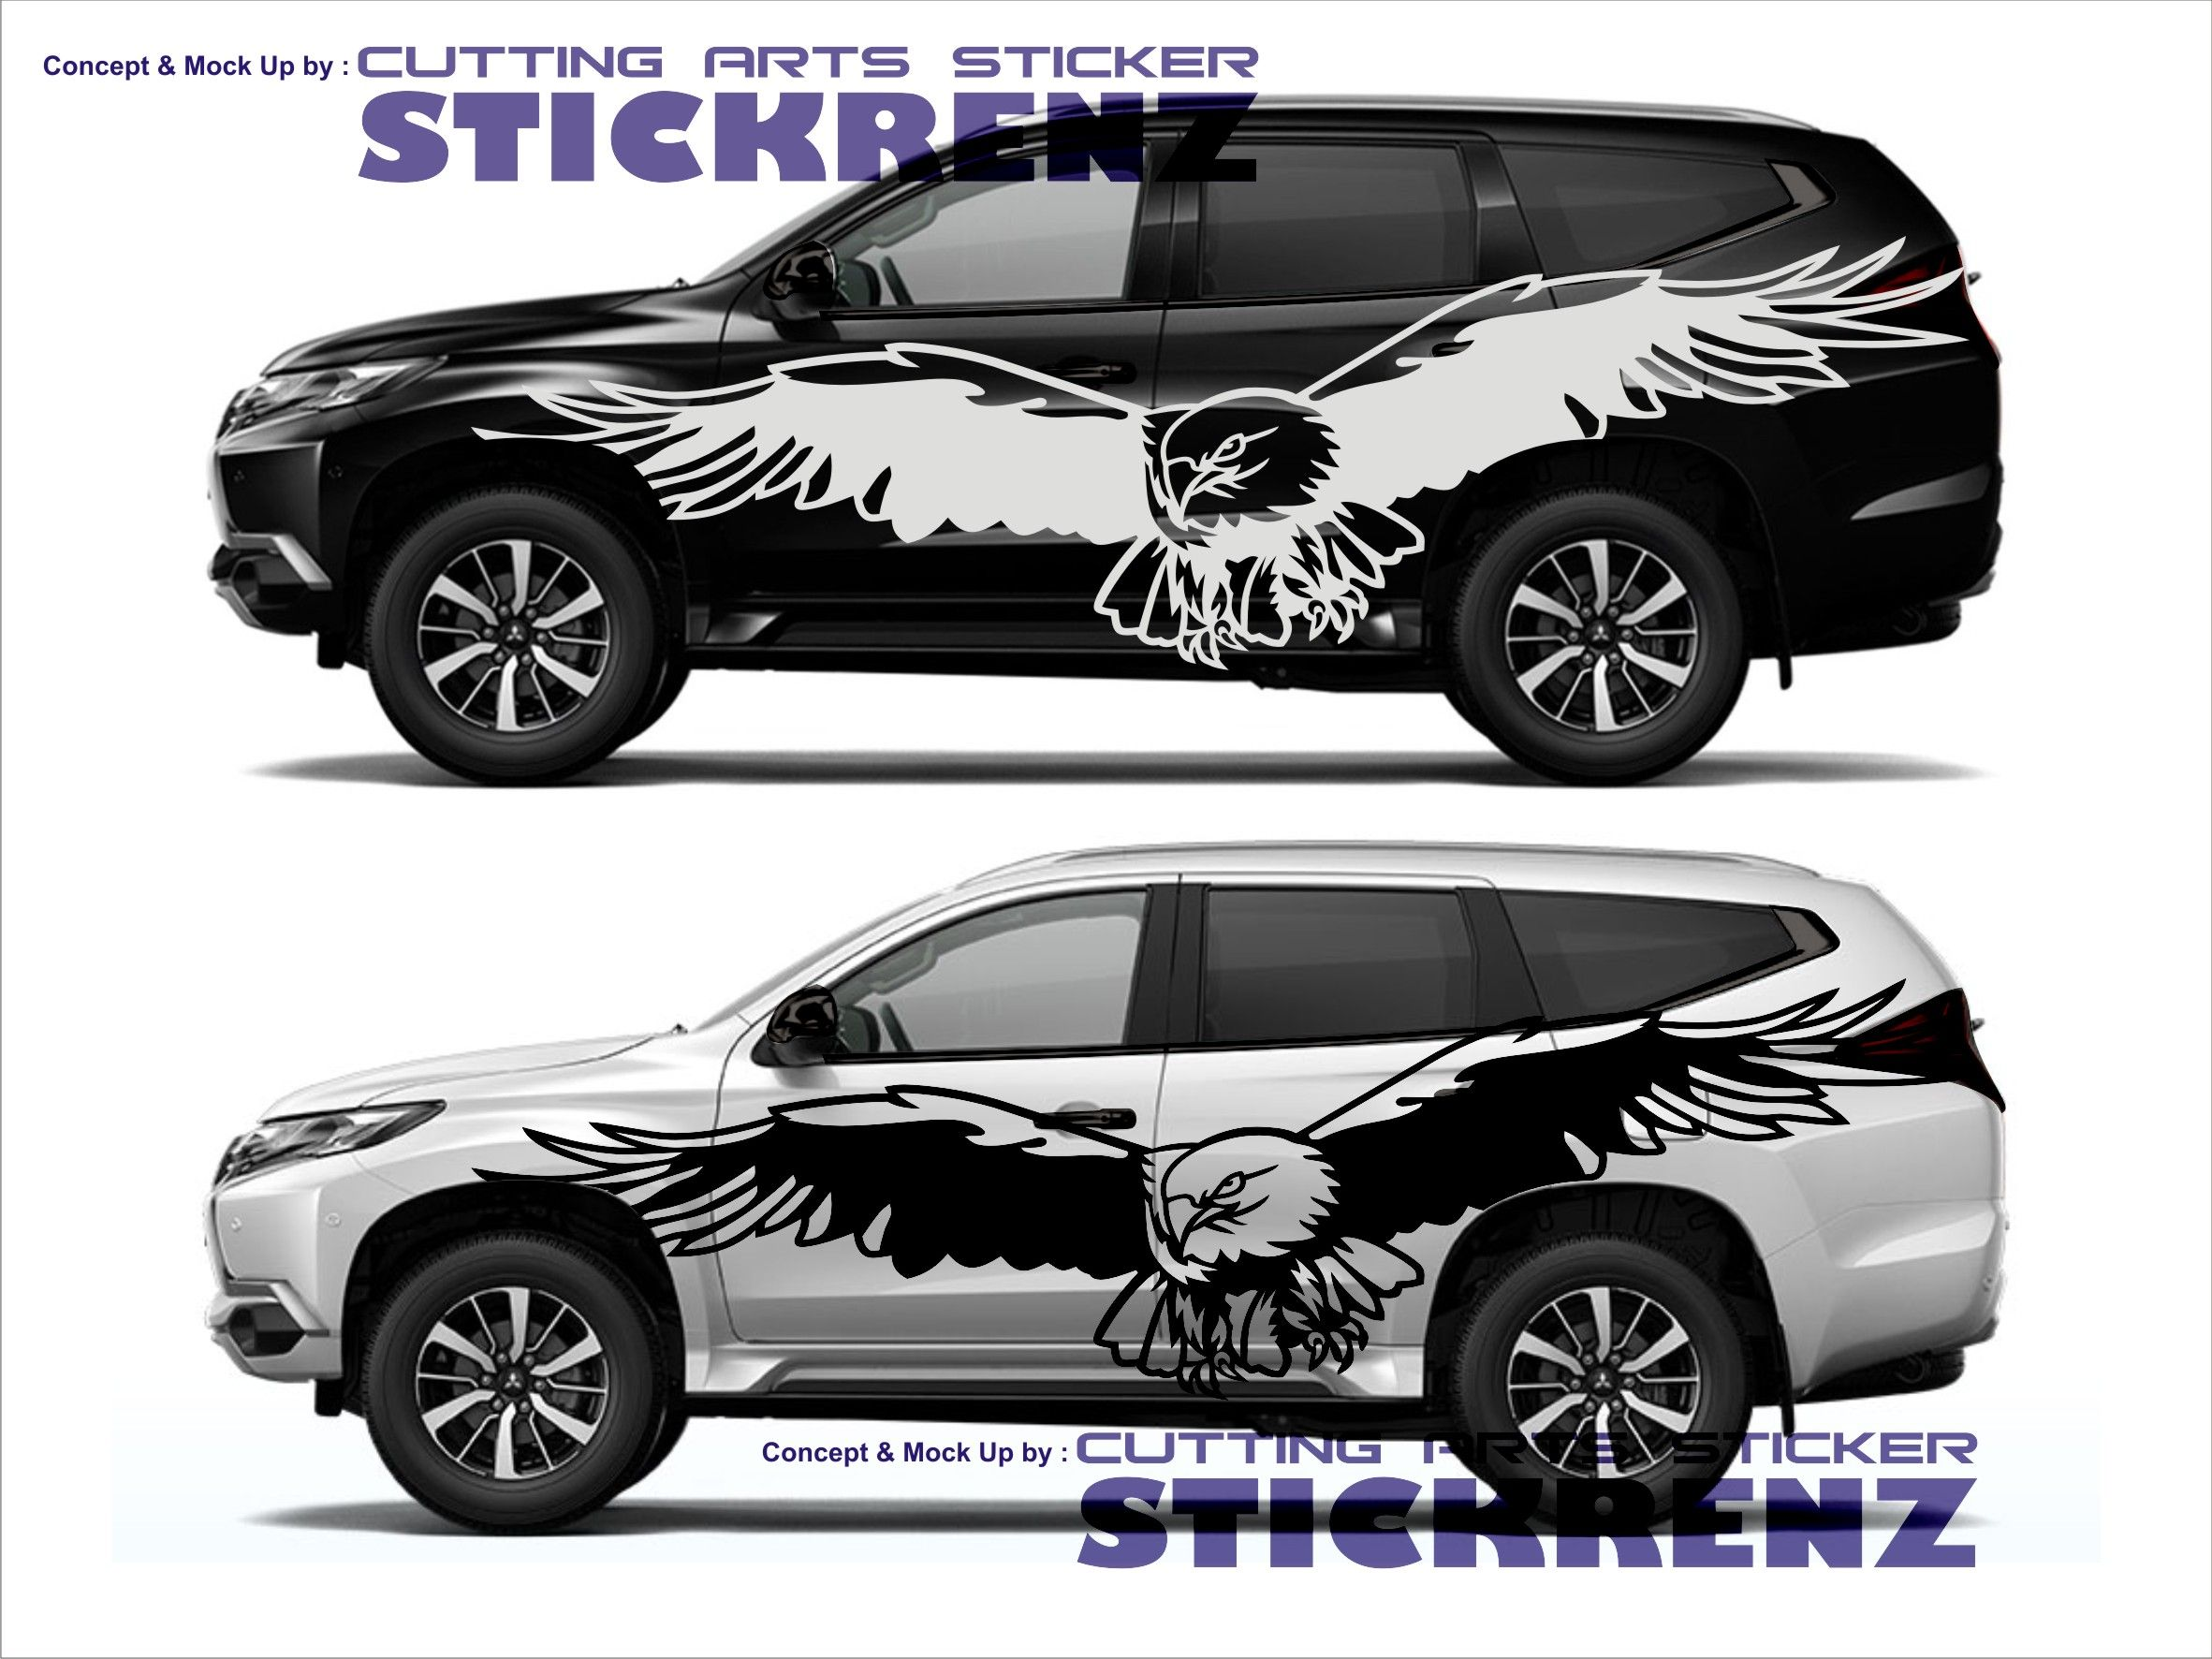 Car custom side cutting sticker concept pajero 001